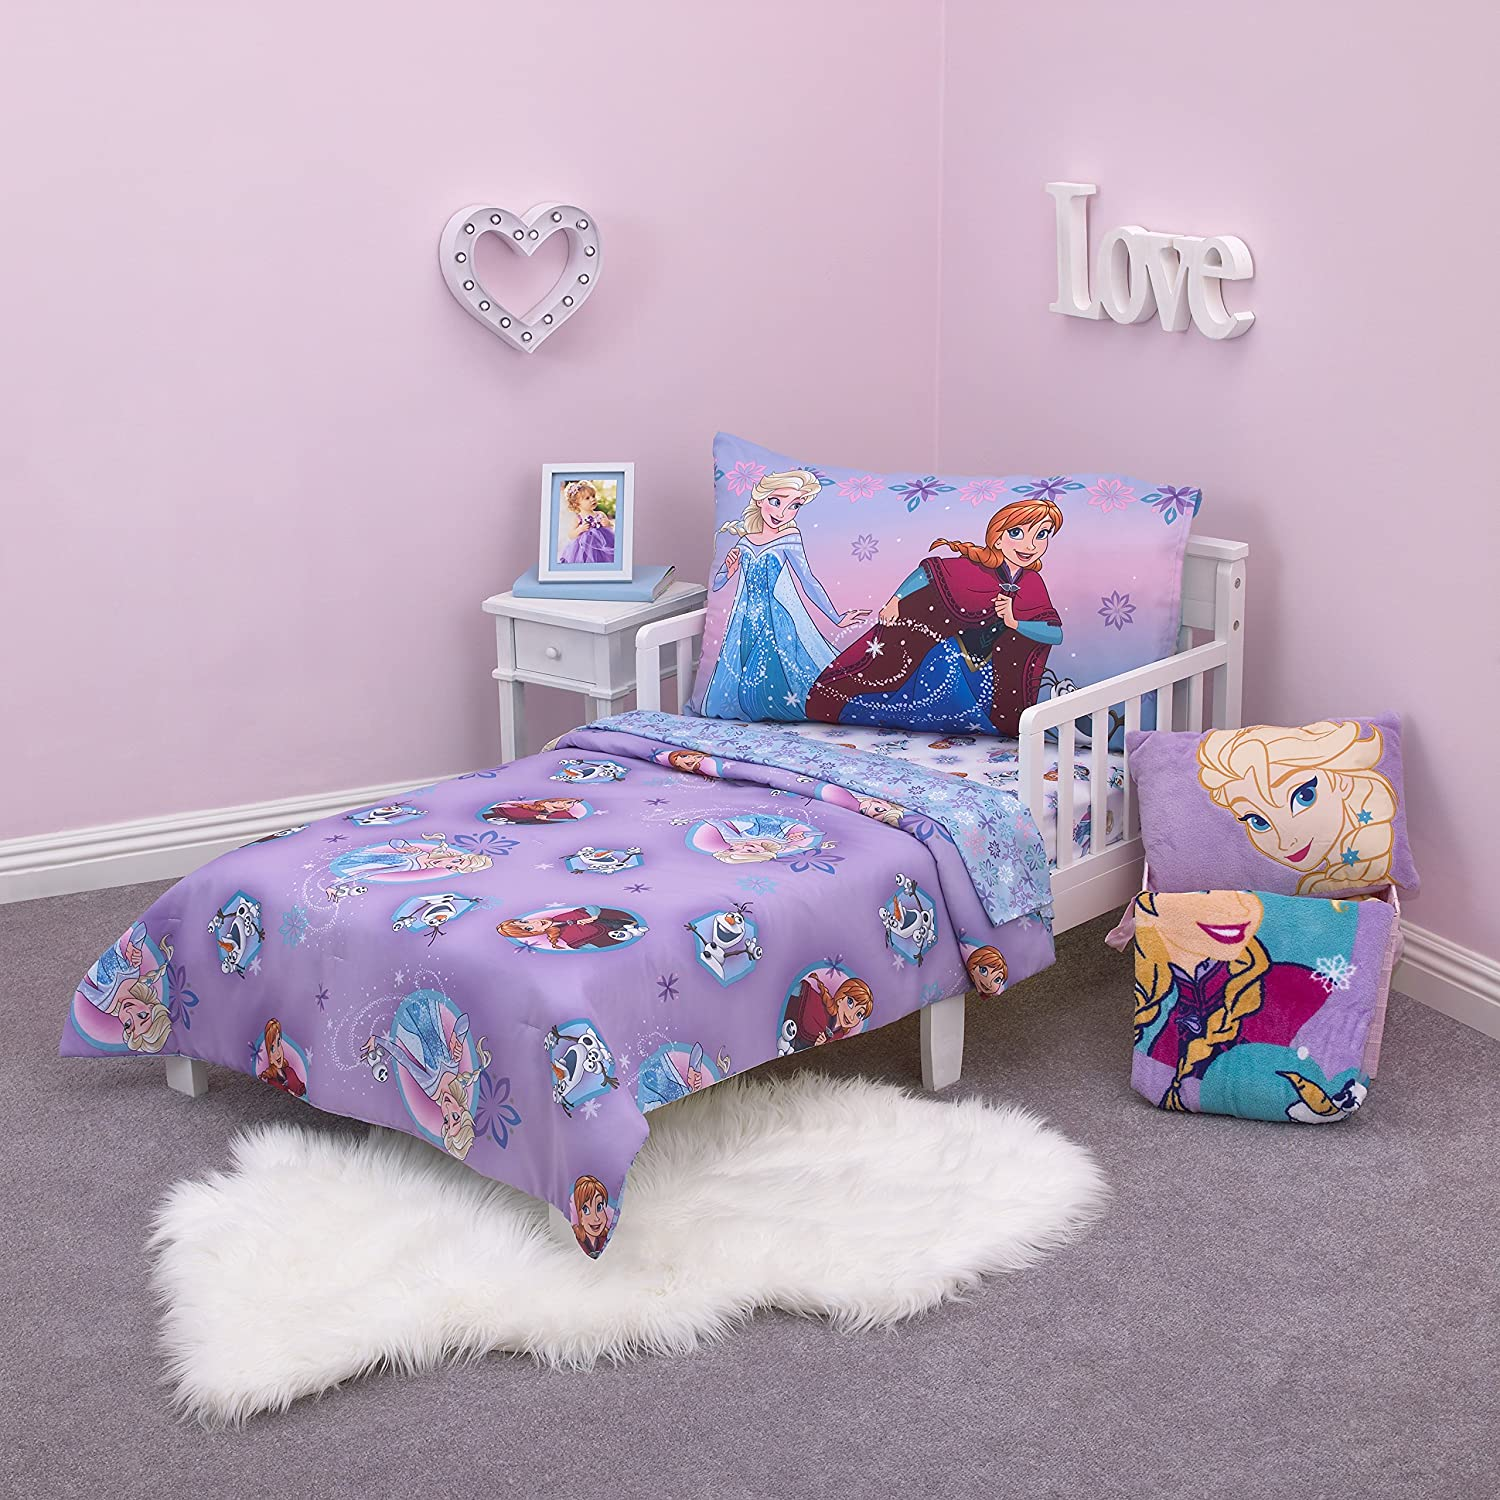 Disney Frozen Stirring Up Fun 4 Piece Toddler Bedding Set, Purple/Pink/Multicolor Corwn Crafts Infant Products 5078416